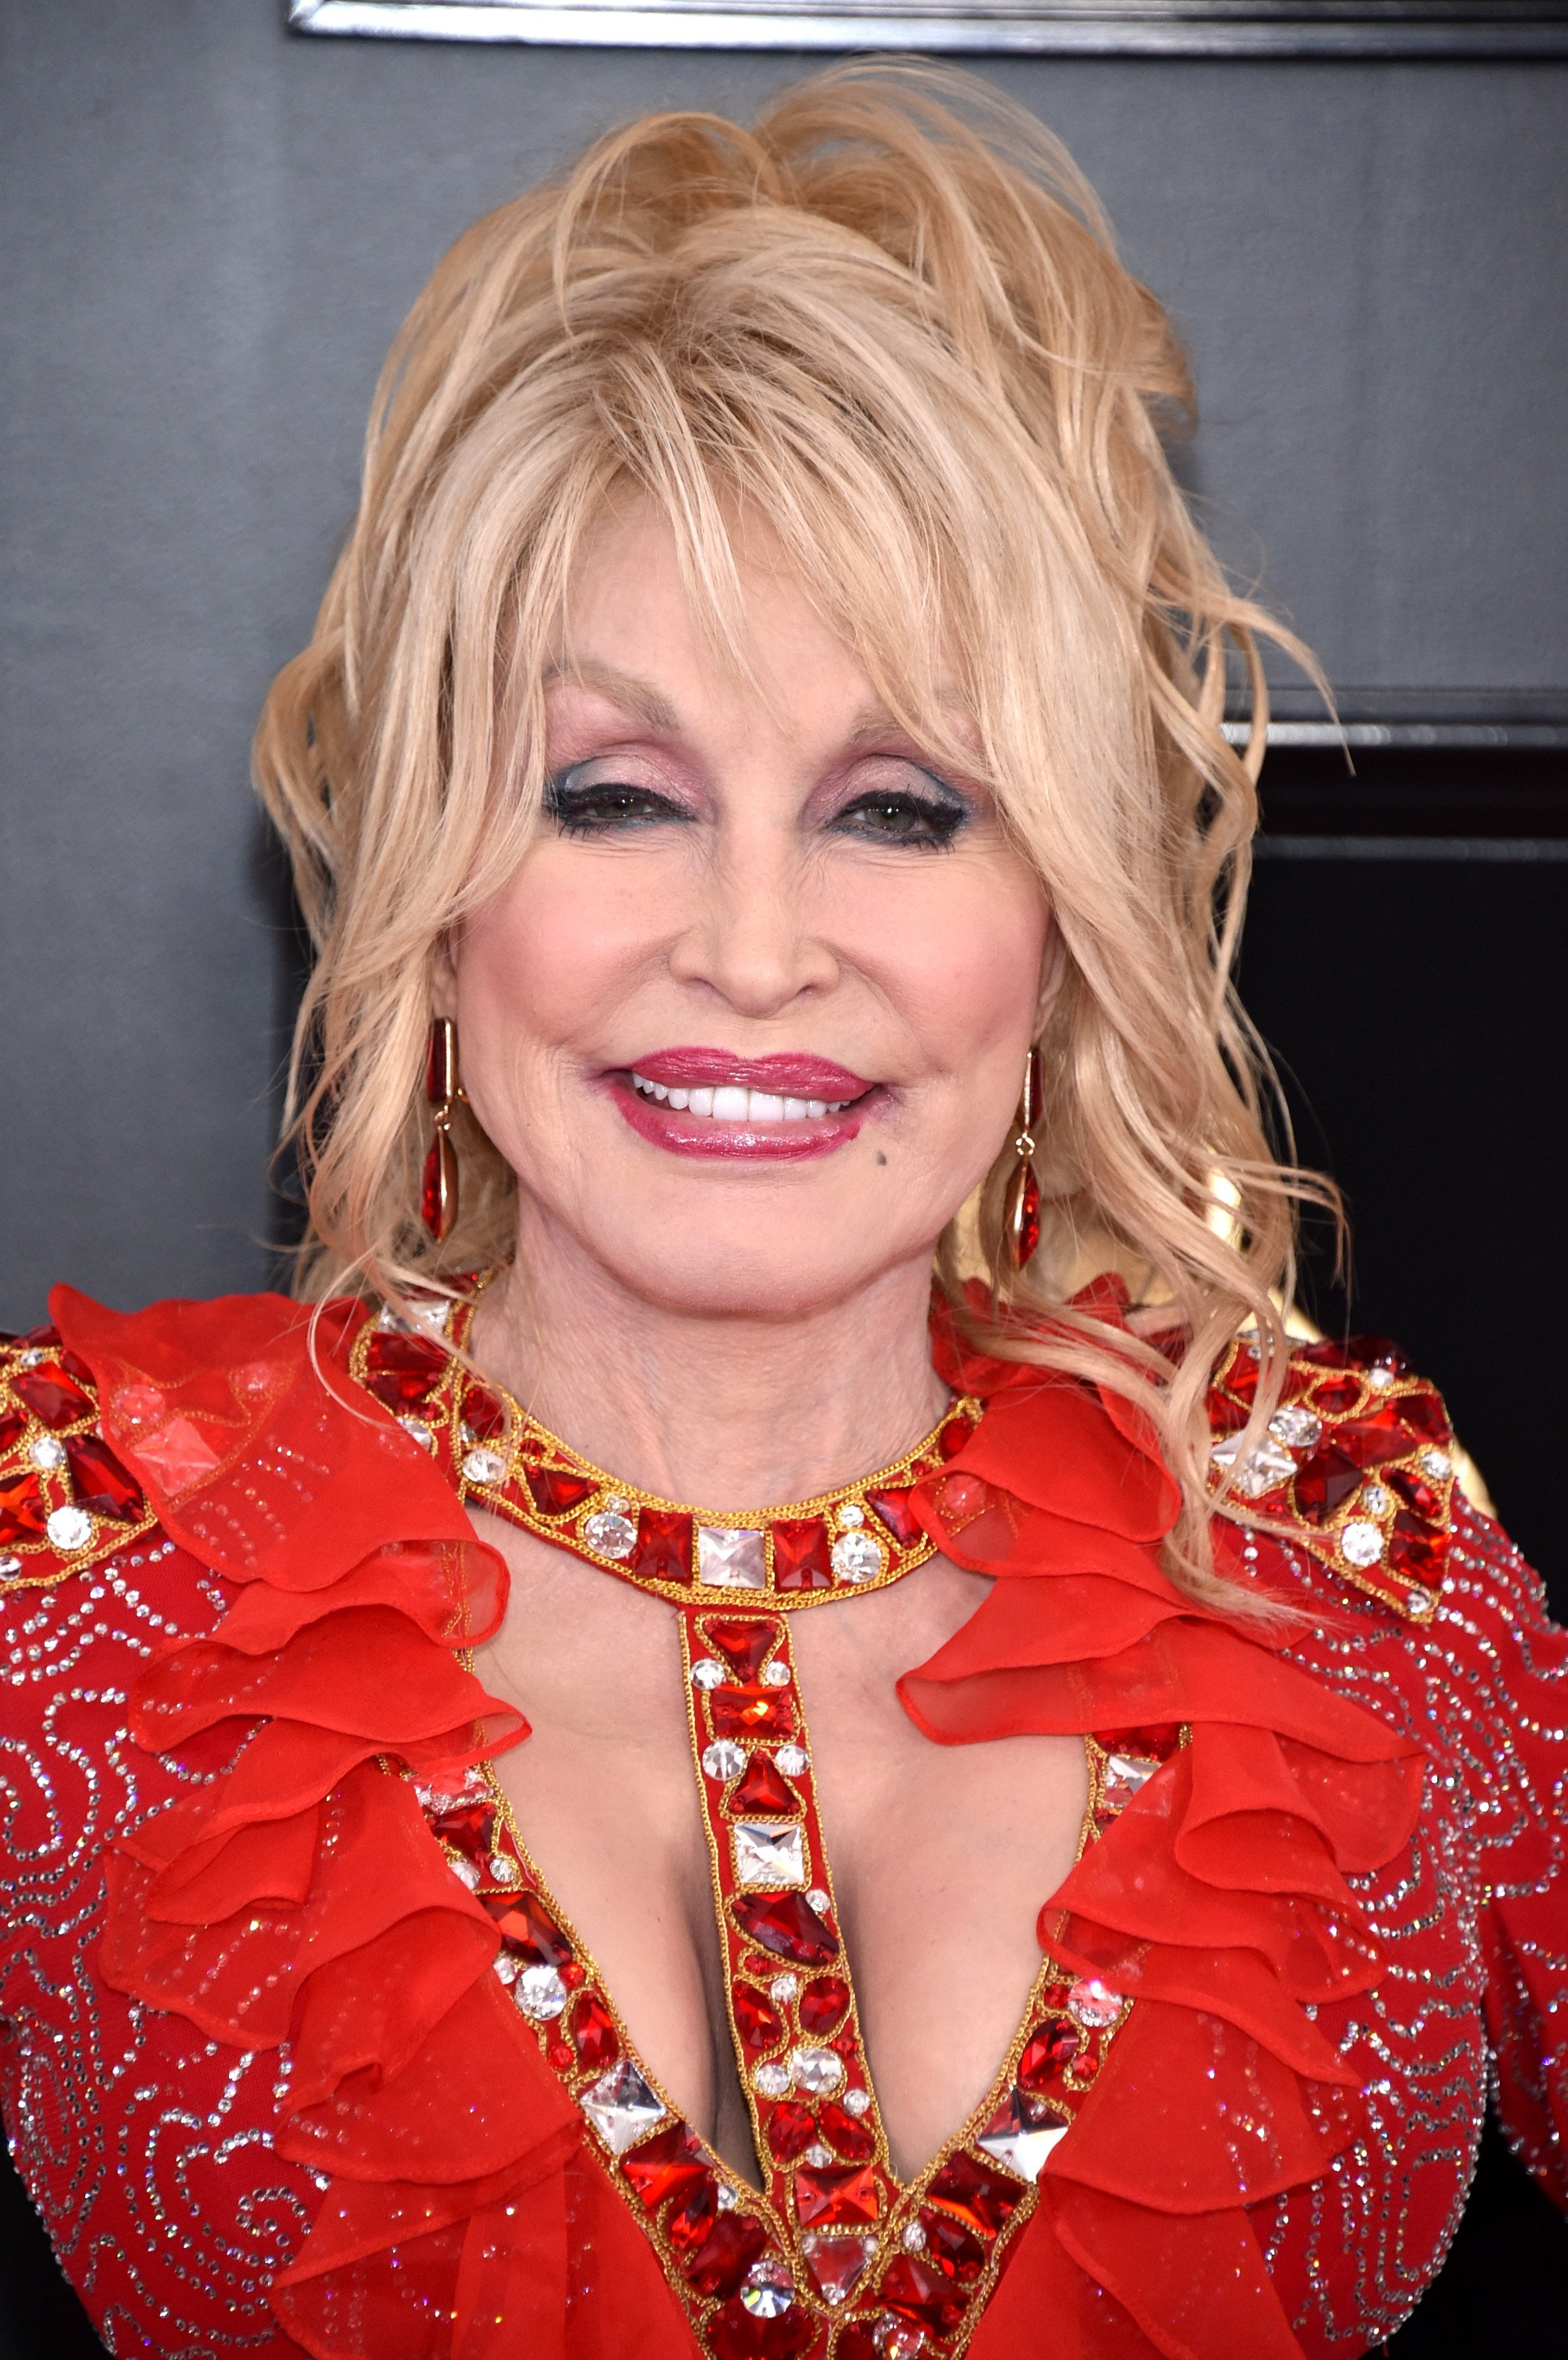 Dolly Parton attends the 61st Annual Grammy in Los Angeles, California in February 10, 2019 | Photo: Getty Images